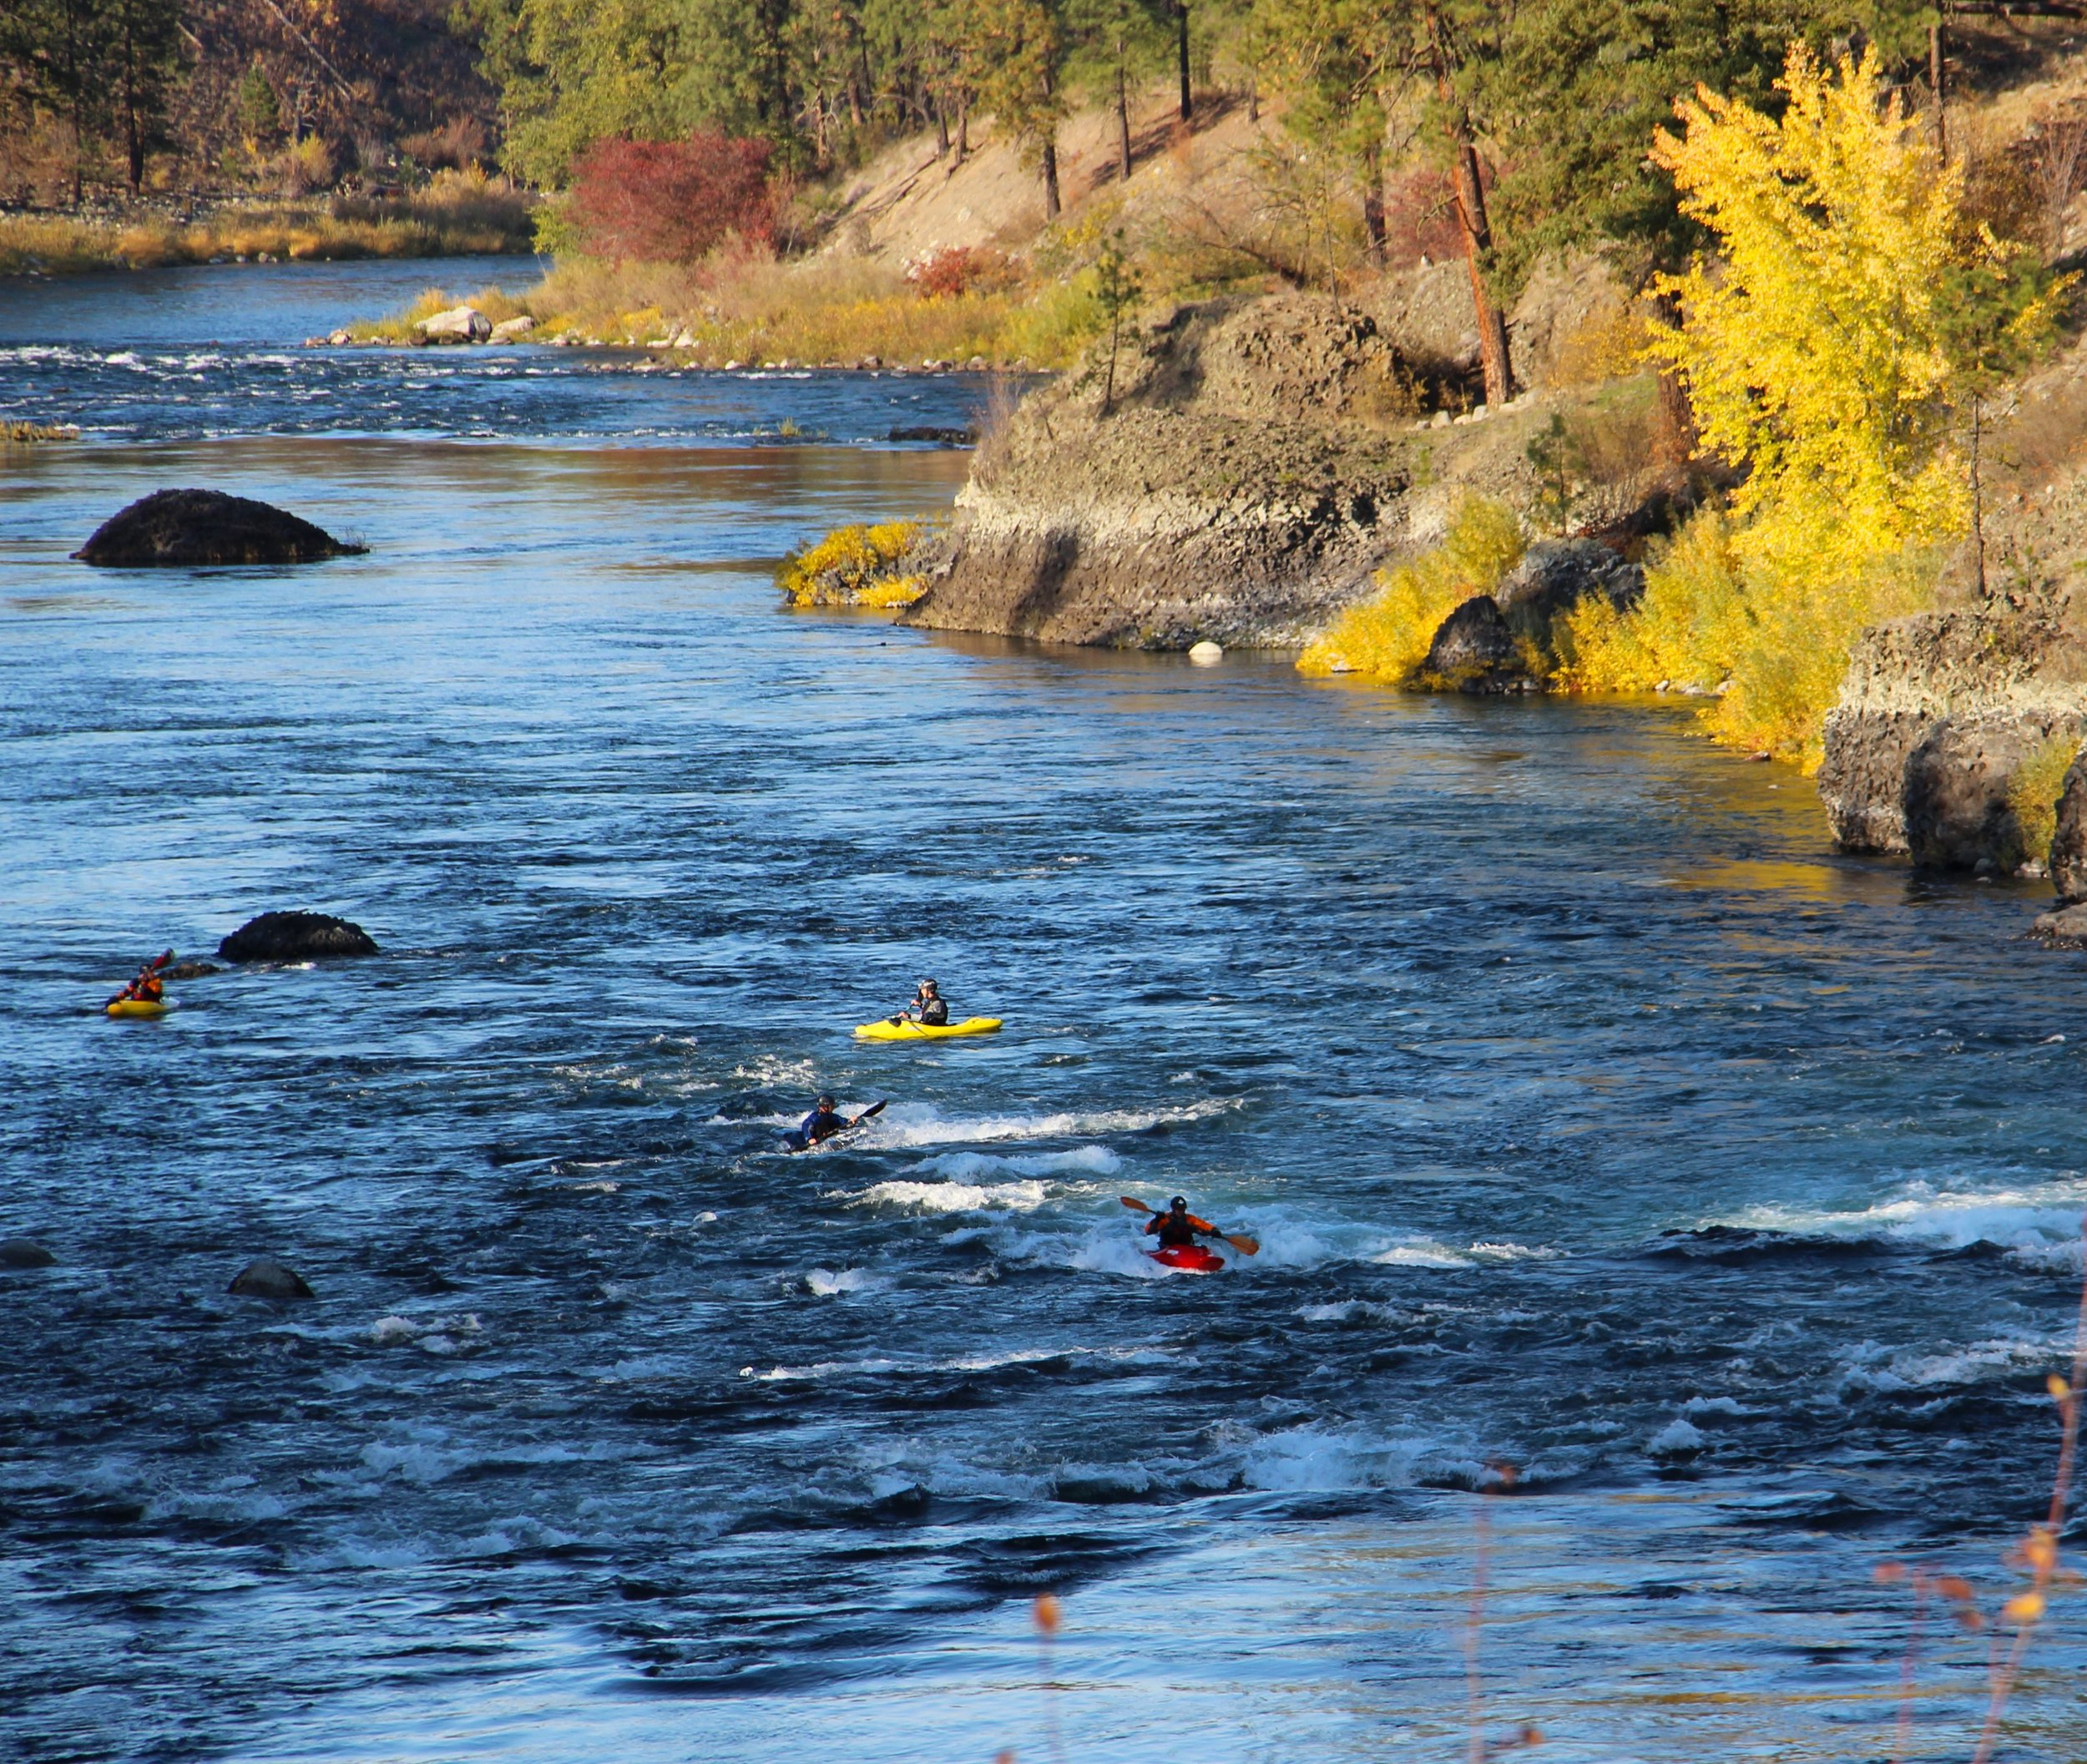 Portions of the Spokane River provide a great boating experience.